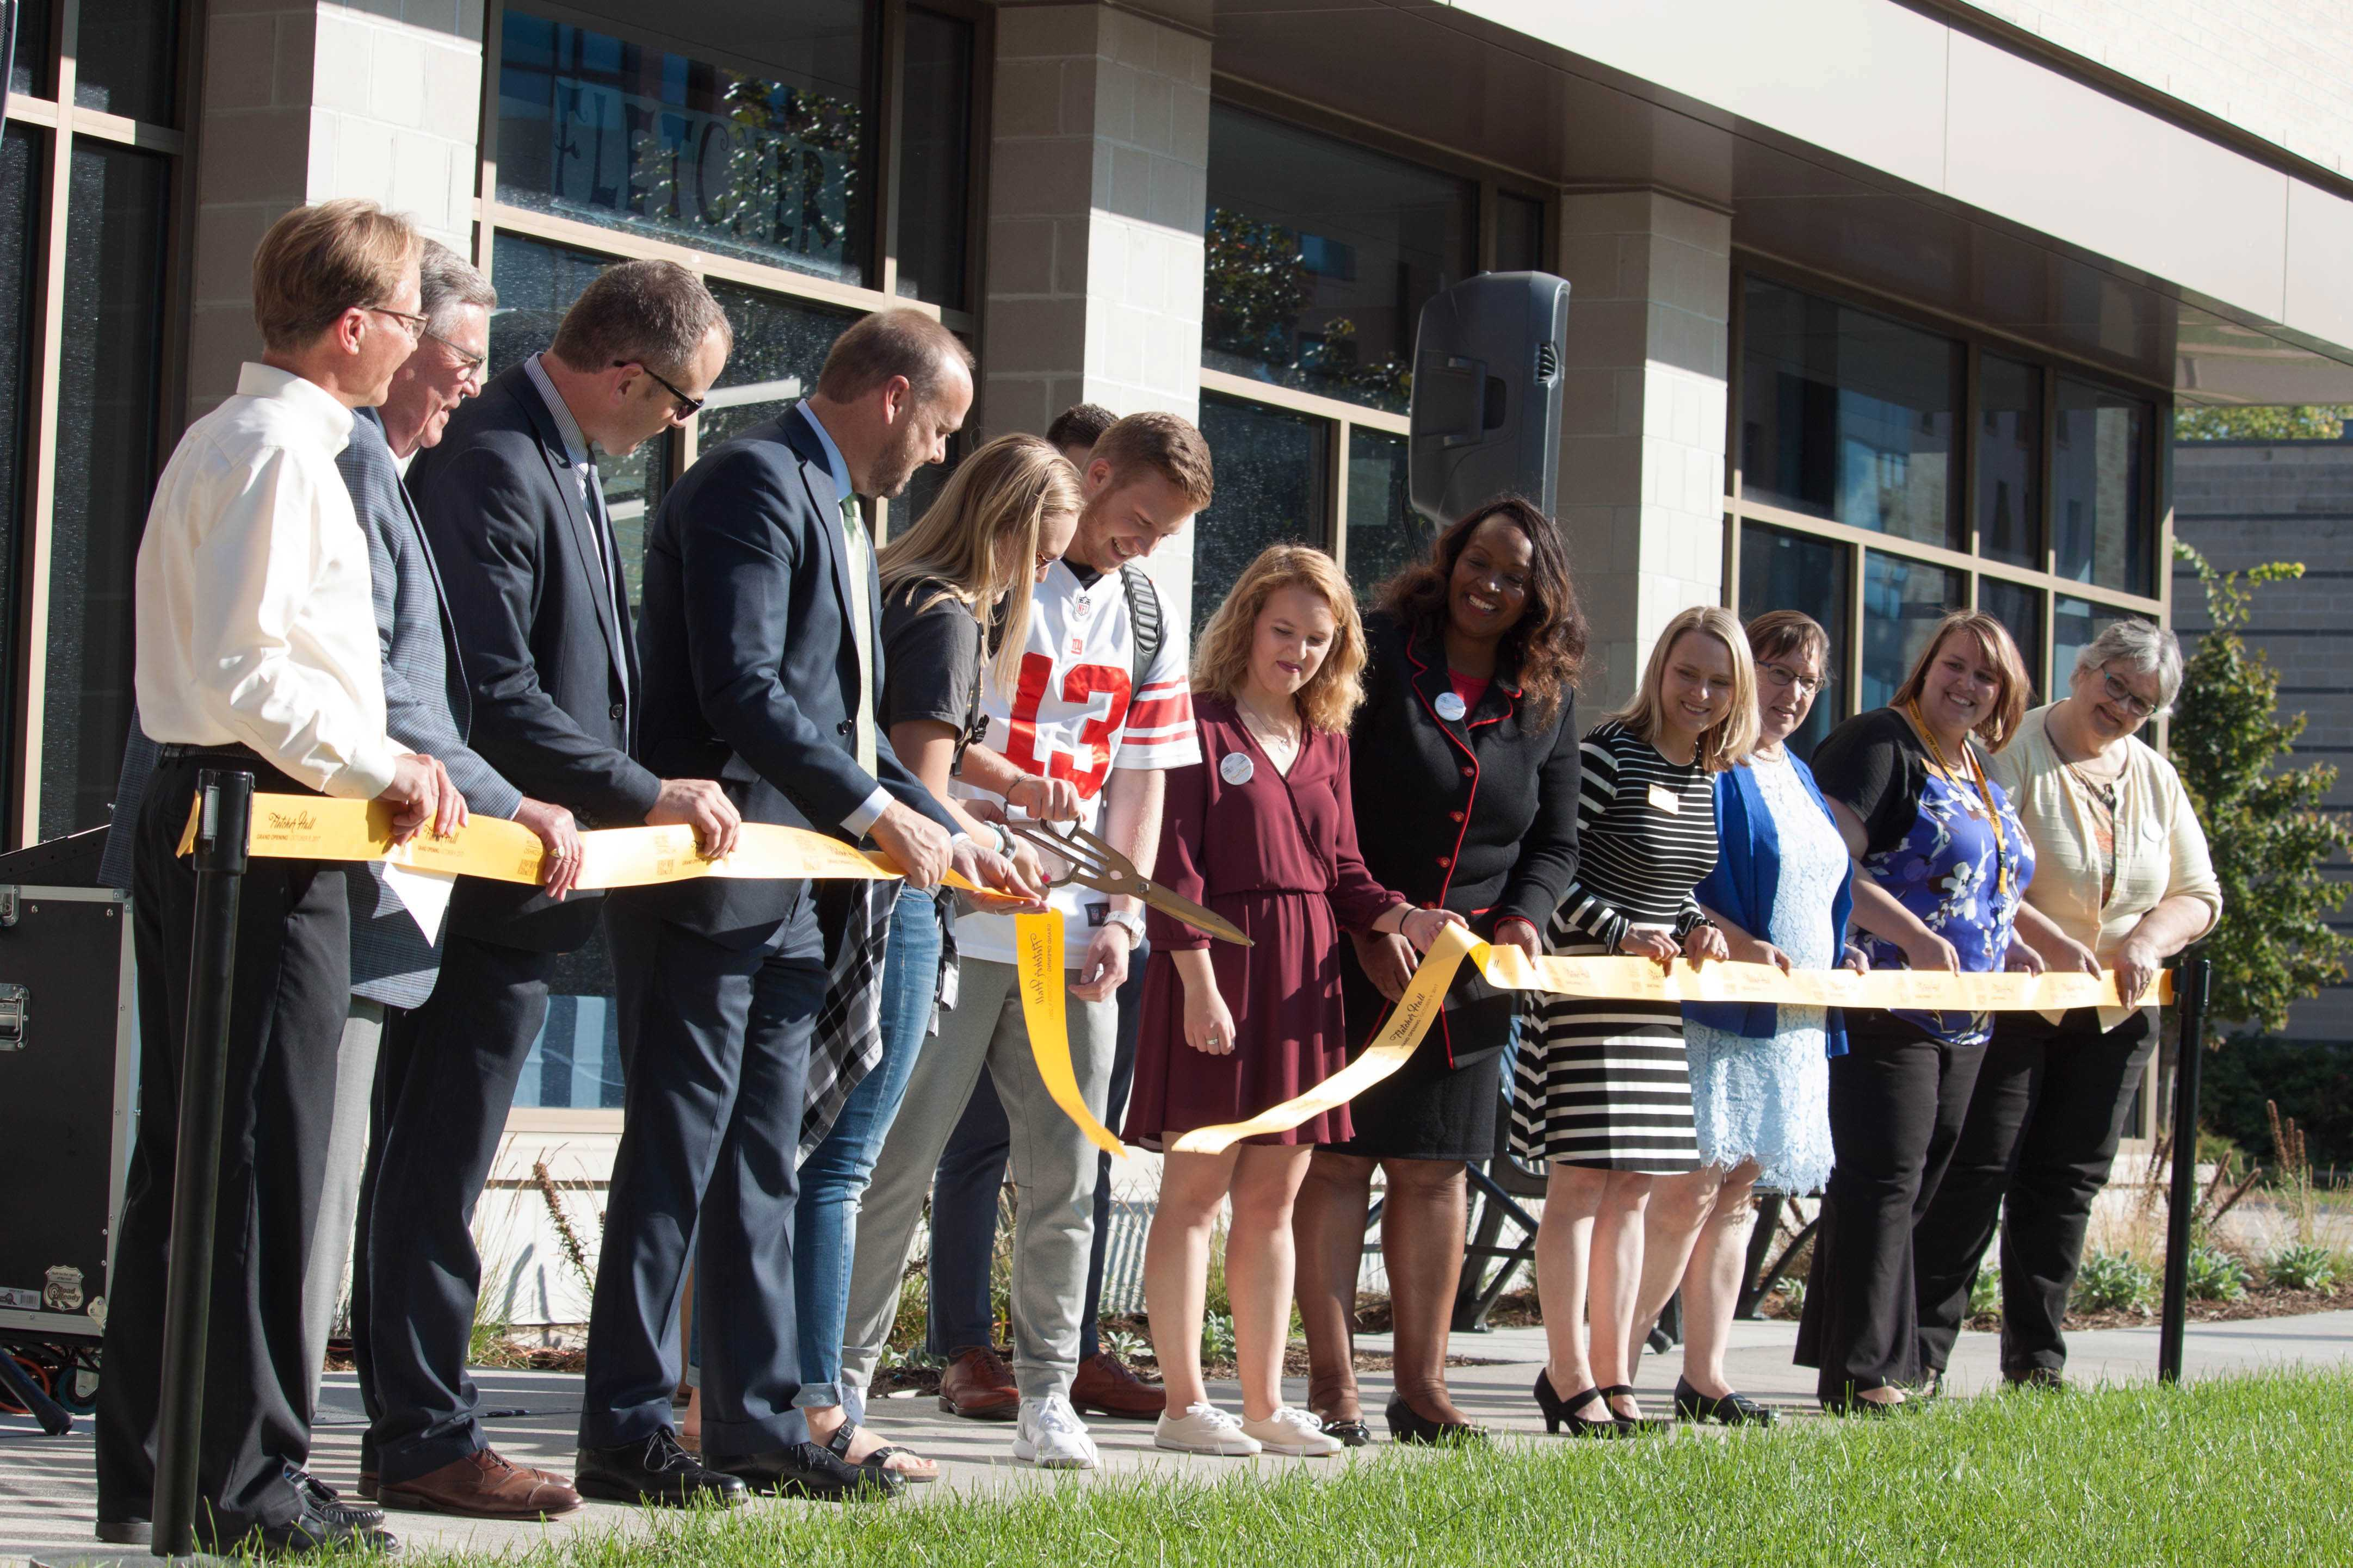 Ribbon cutting marks opening of new buildings